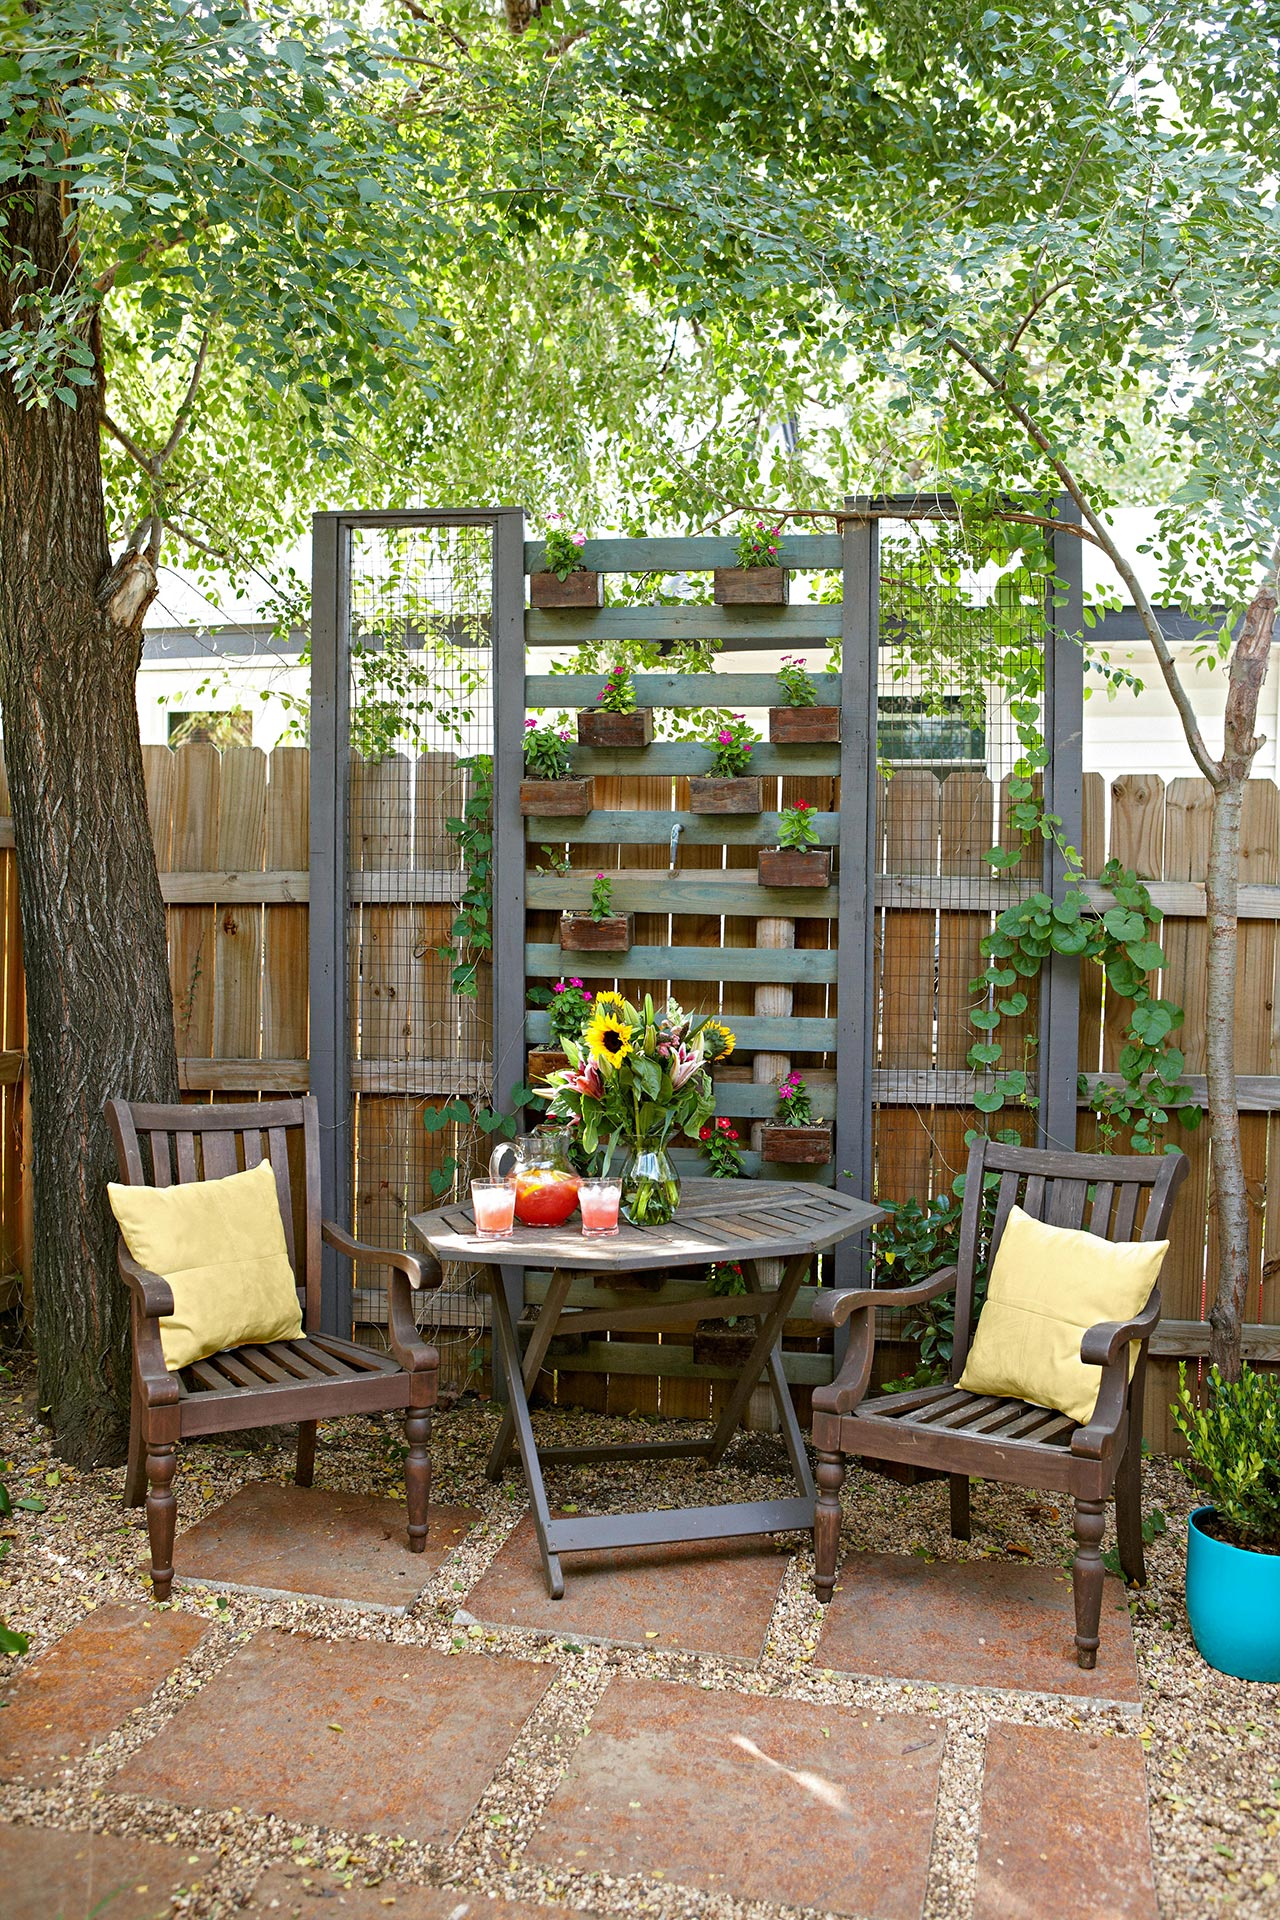 16 Simple Solutions for Small-Space Landscapes | Better ... on Small Garden Sitting Area Ideas id=69654